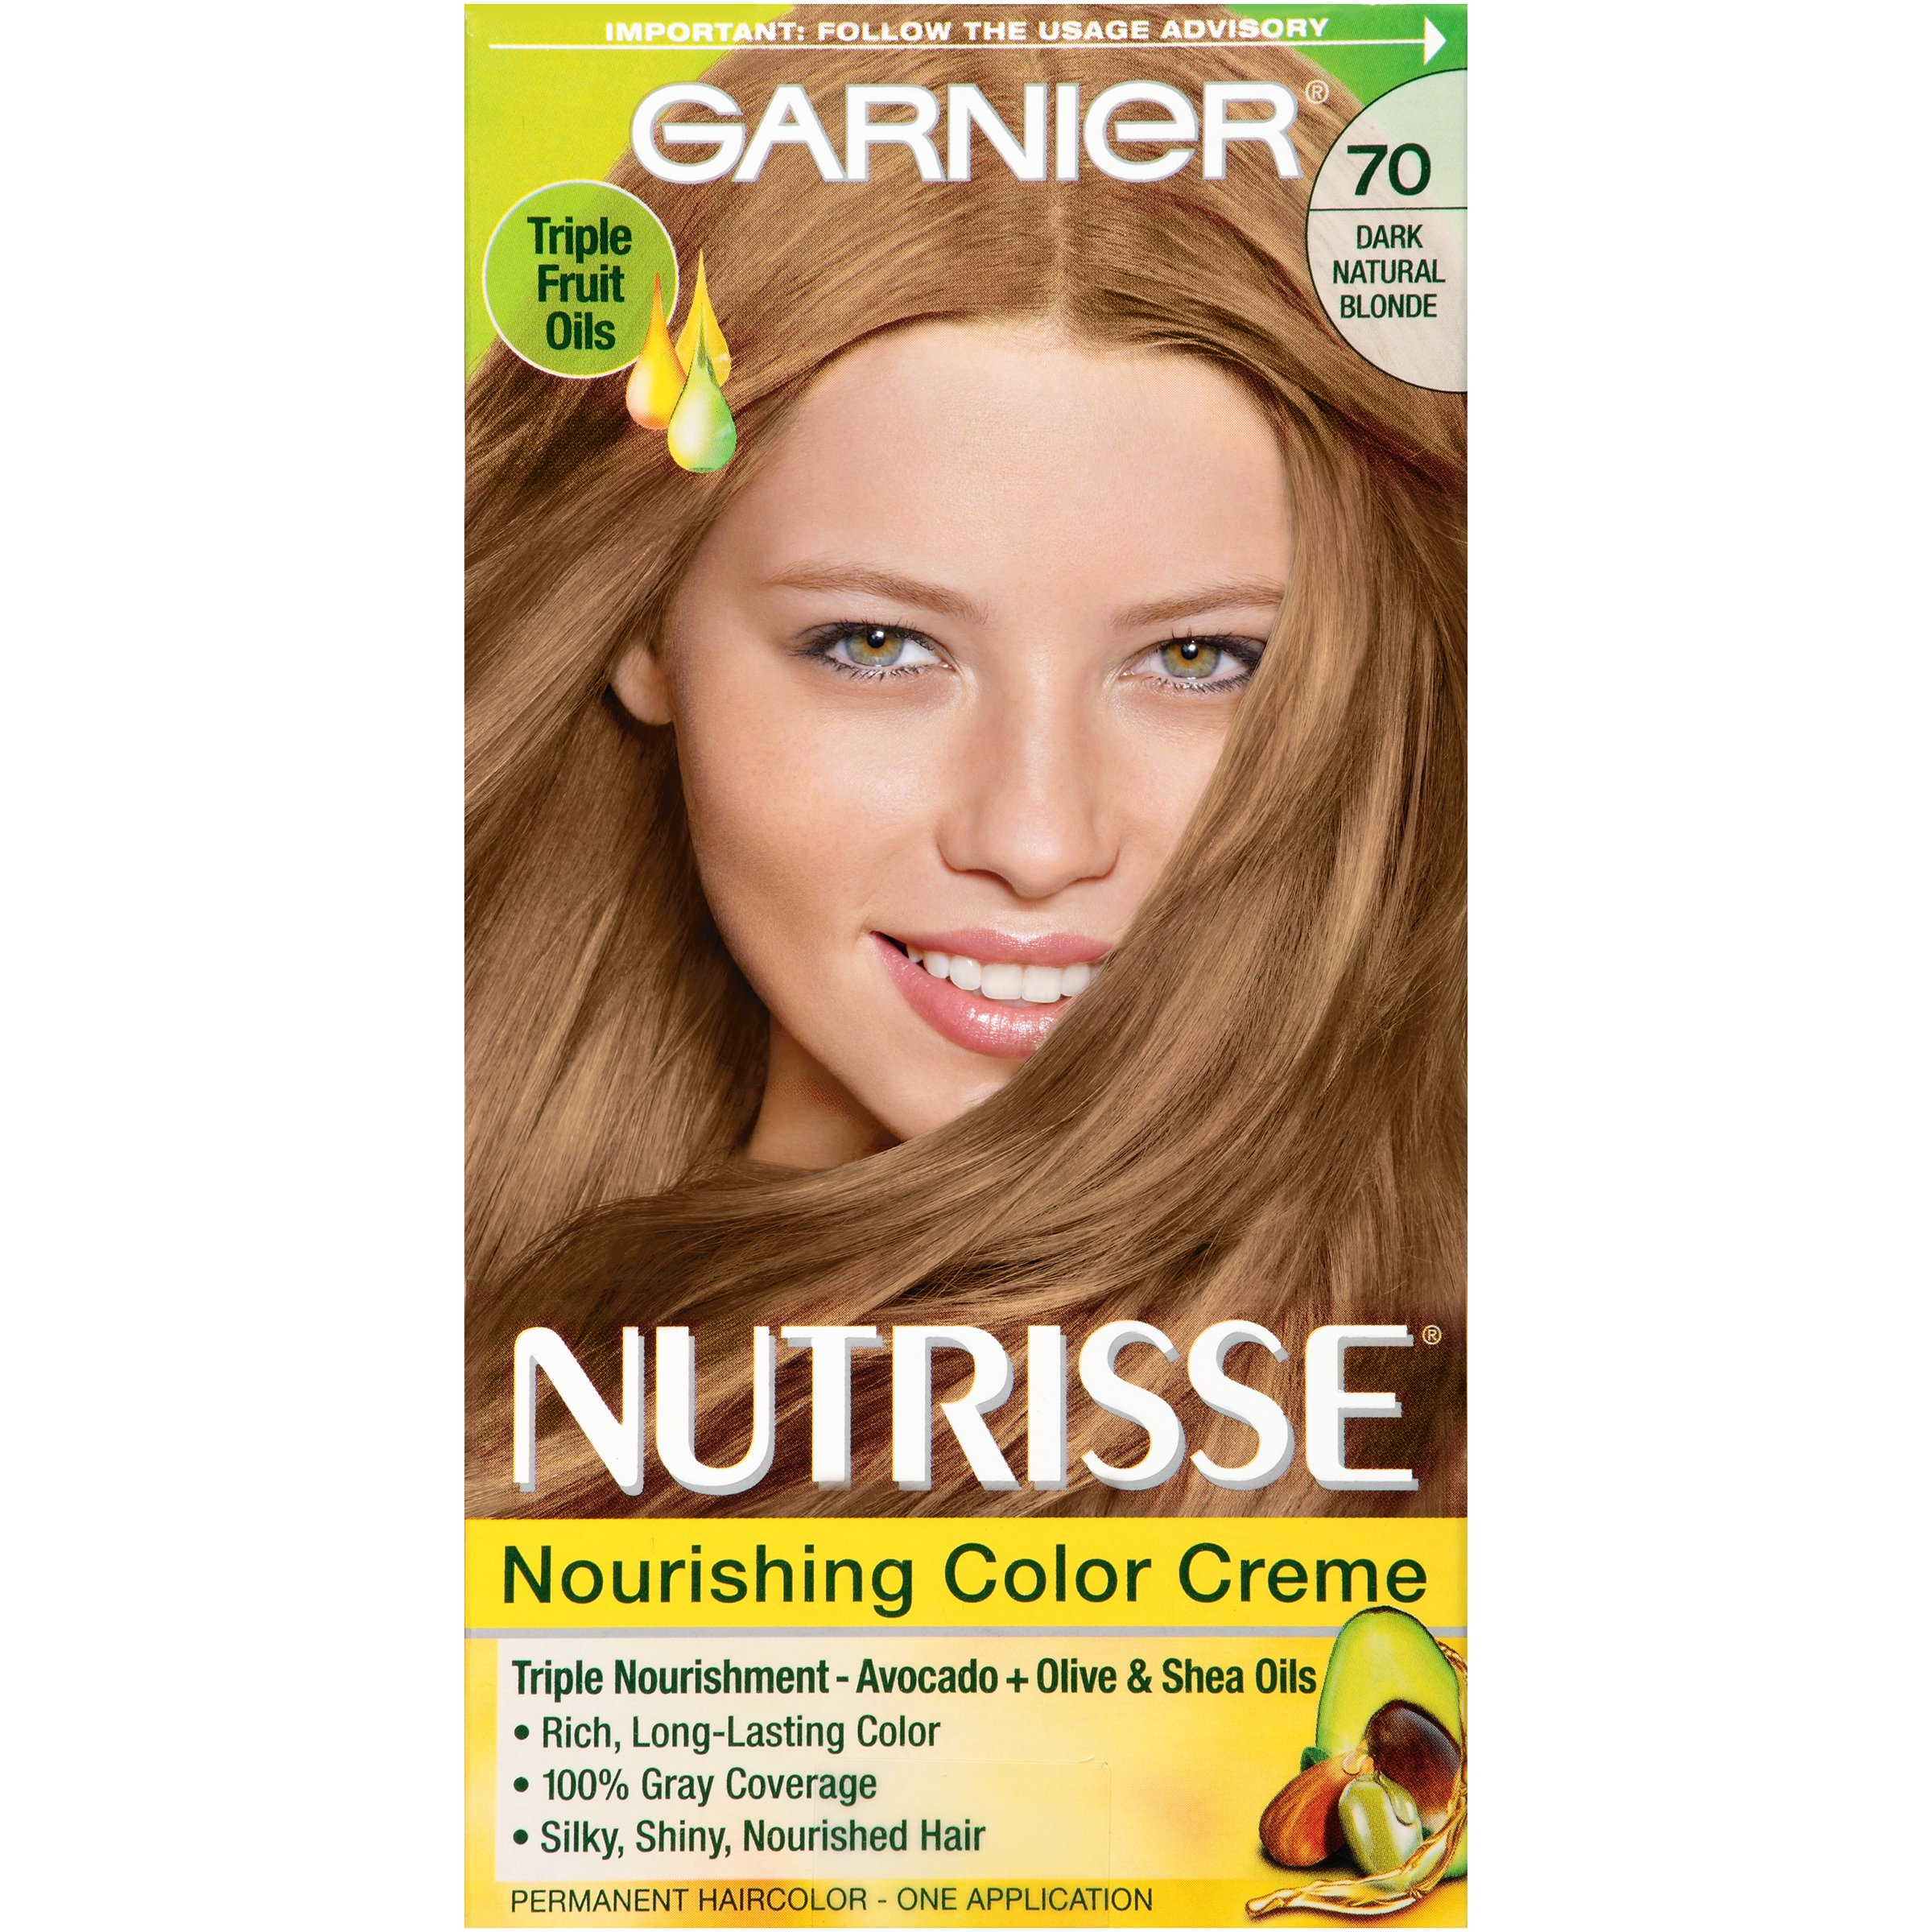 Cheap Garnier Nutrisse Hair Color Coupon Find Garnier Nutrisse Hair